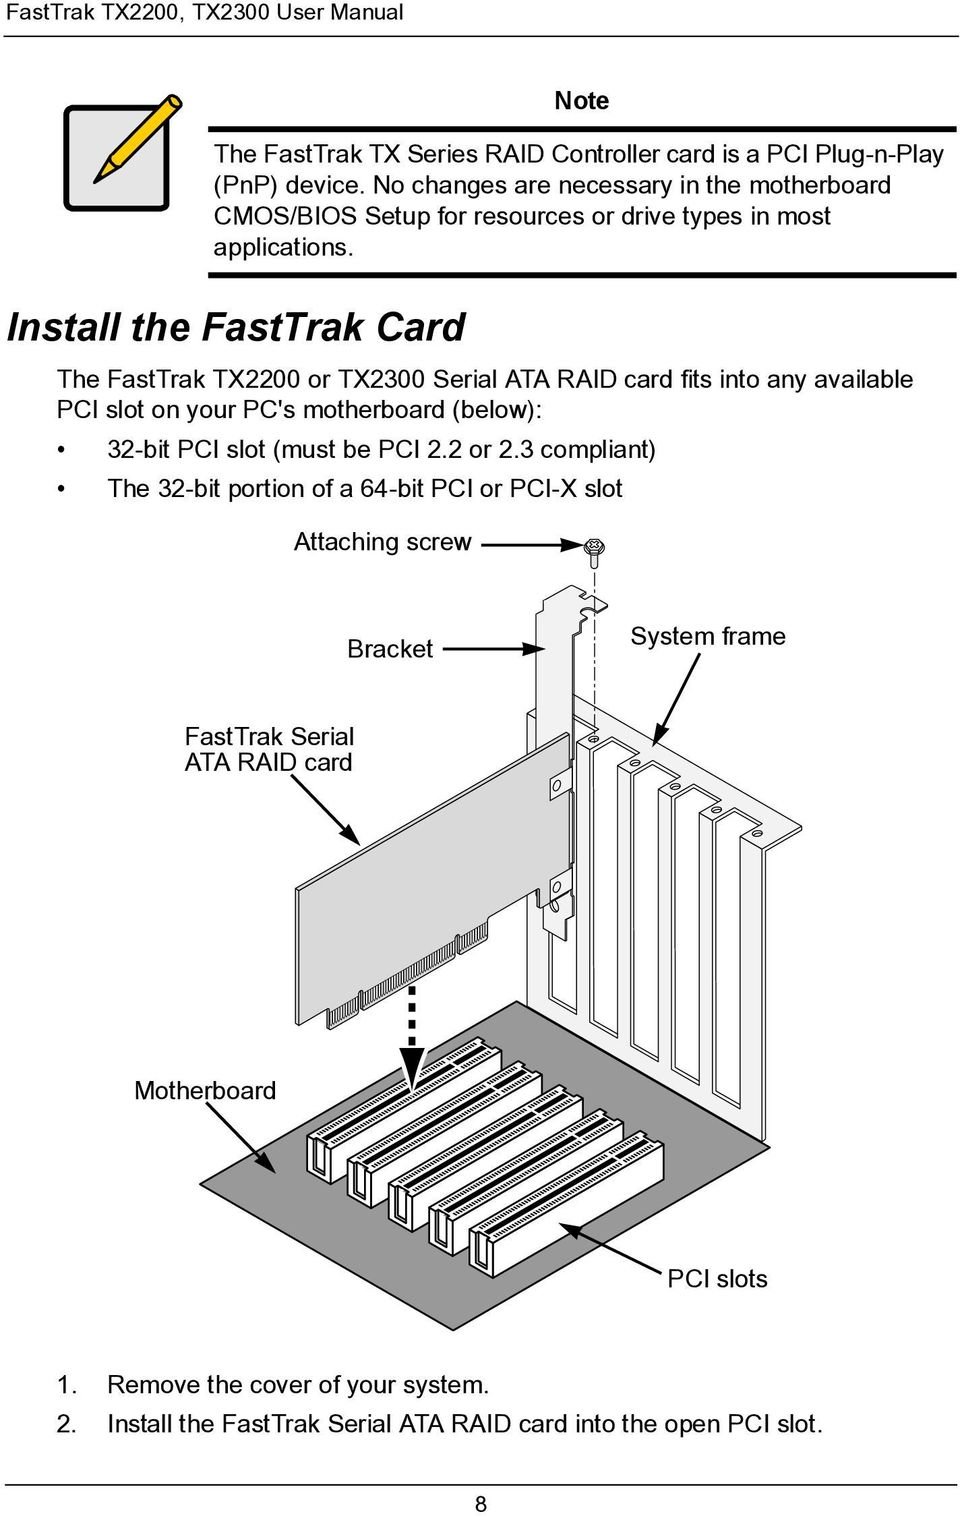 Install the FastTrak Card The FastTrak TX2200 or TX2300 Serial ATA RAID card fits into any available PCI slot on your PC's motherboard (below): 32-bit PCI slot (must